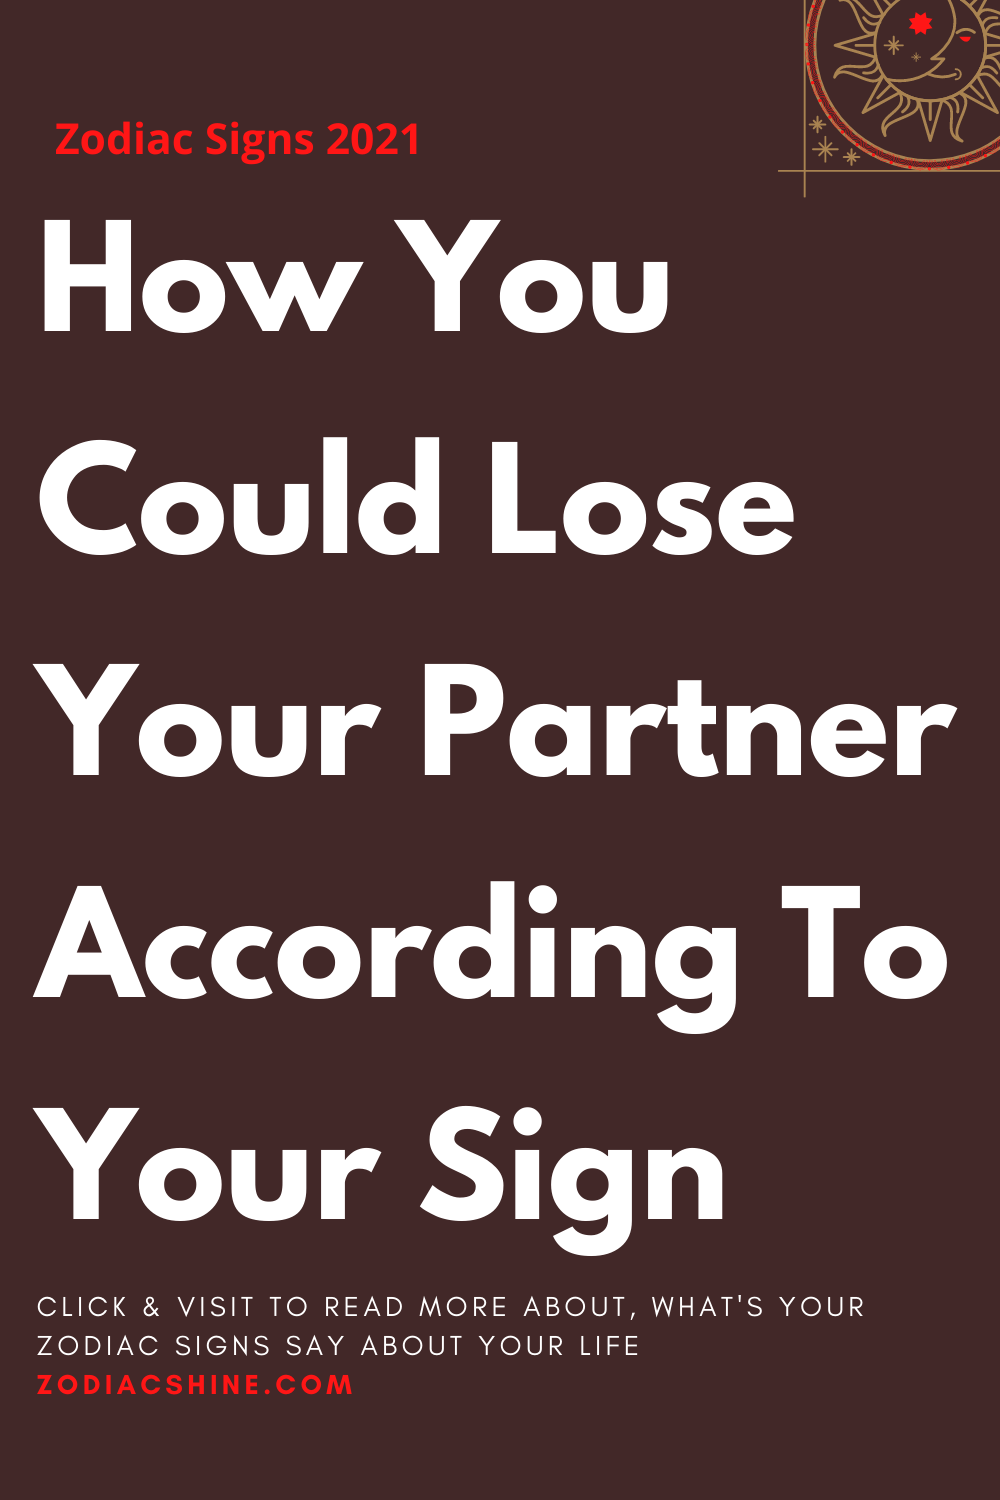 How You Could Lose Your Partner According To Your Sign